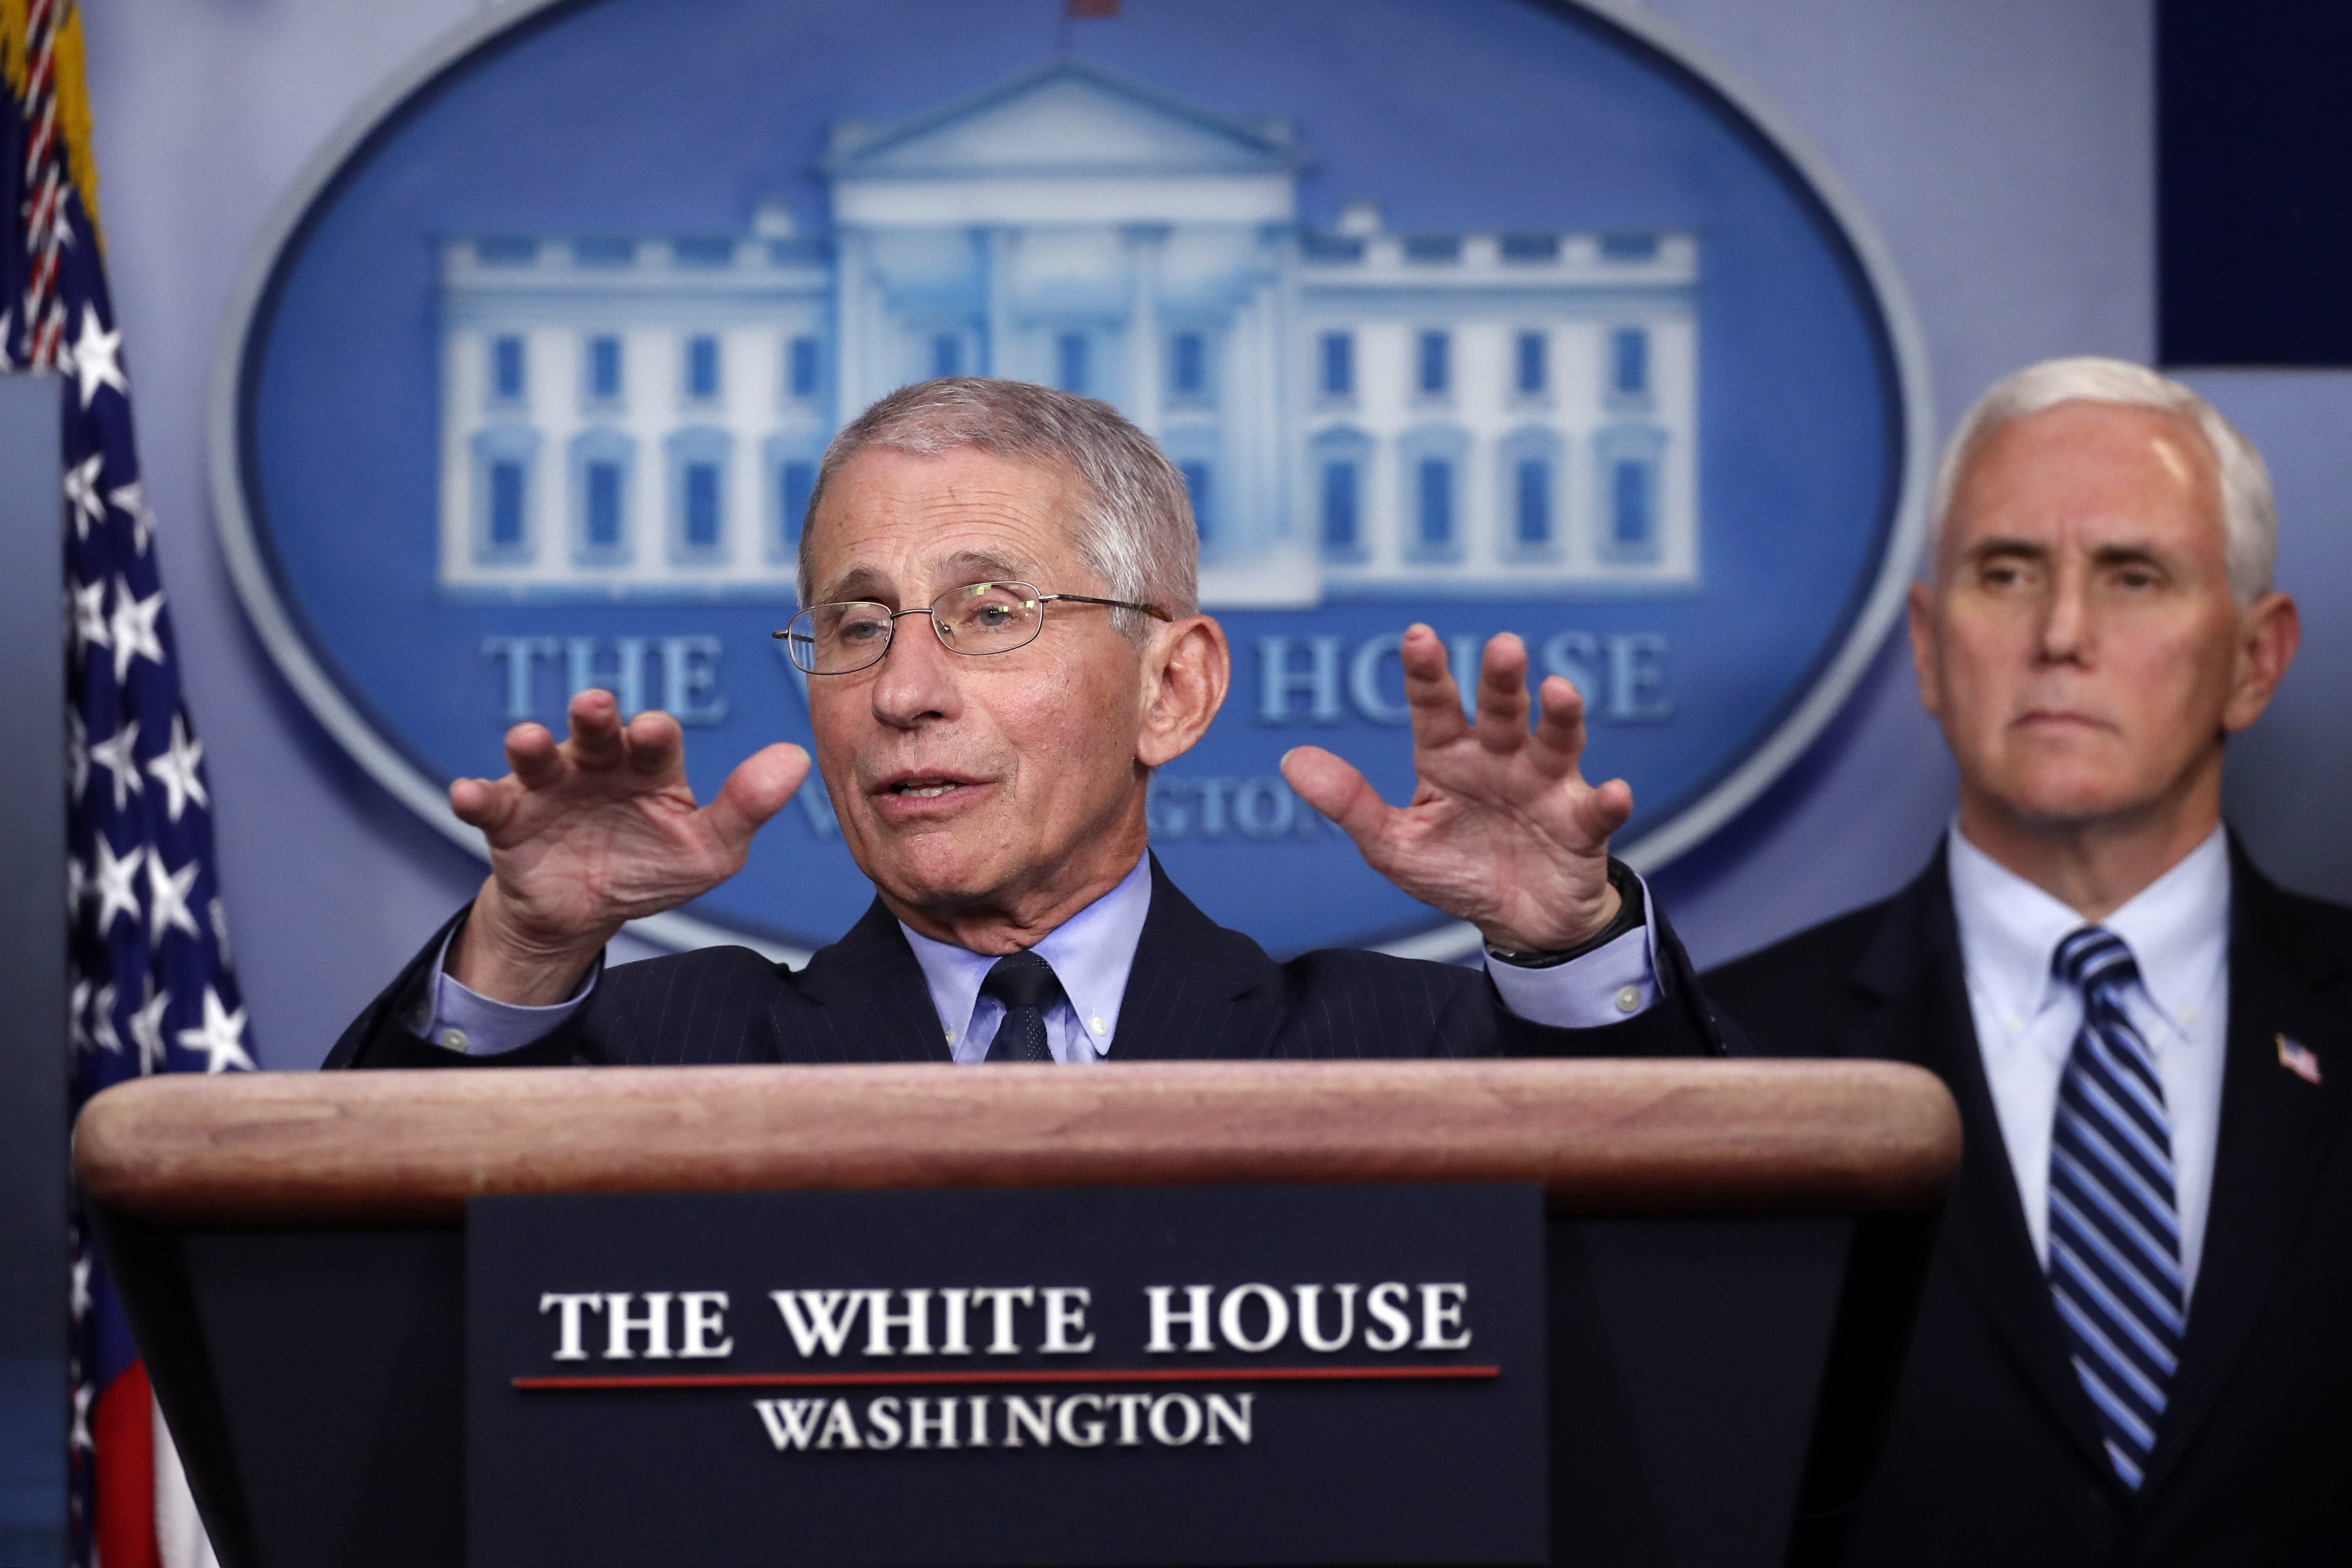 Top US coronavirus expert Dr. Fauci responds to added security detail after threats: 'I've chosen this life'